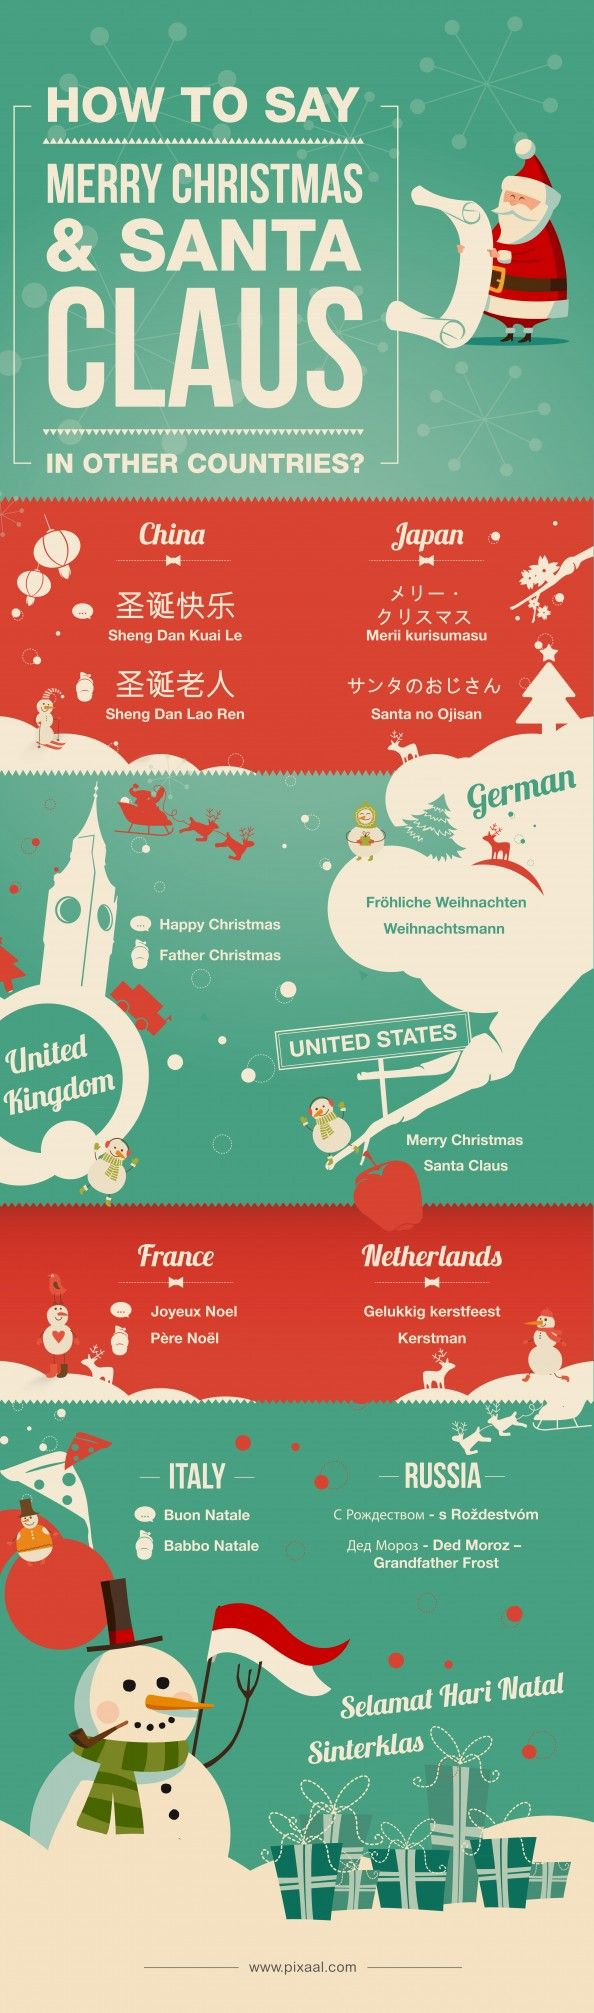 How to Say Merry Christmas & Santa Claus in other Countries